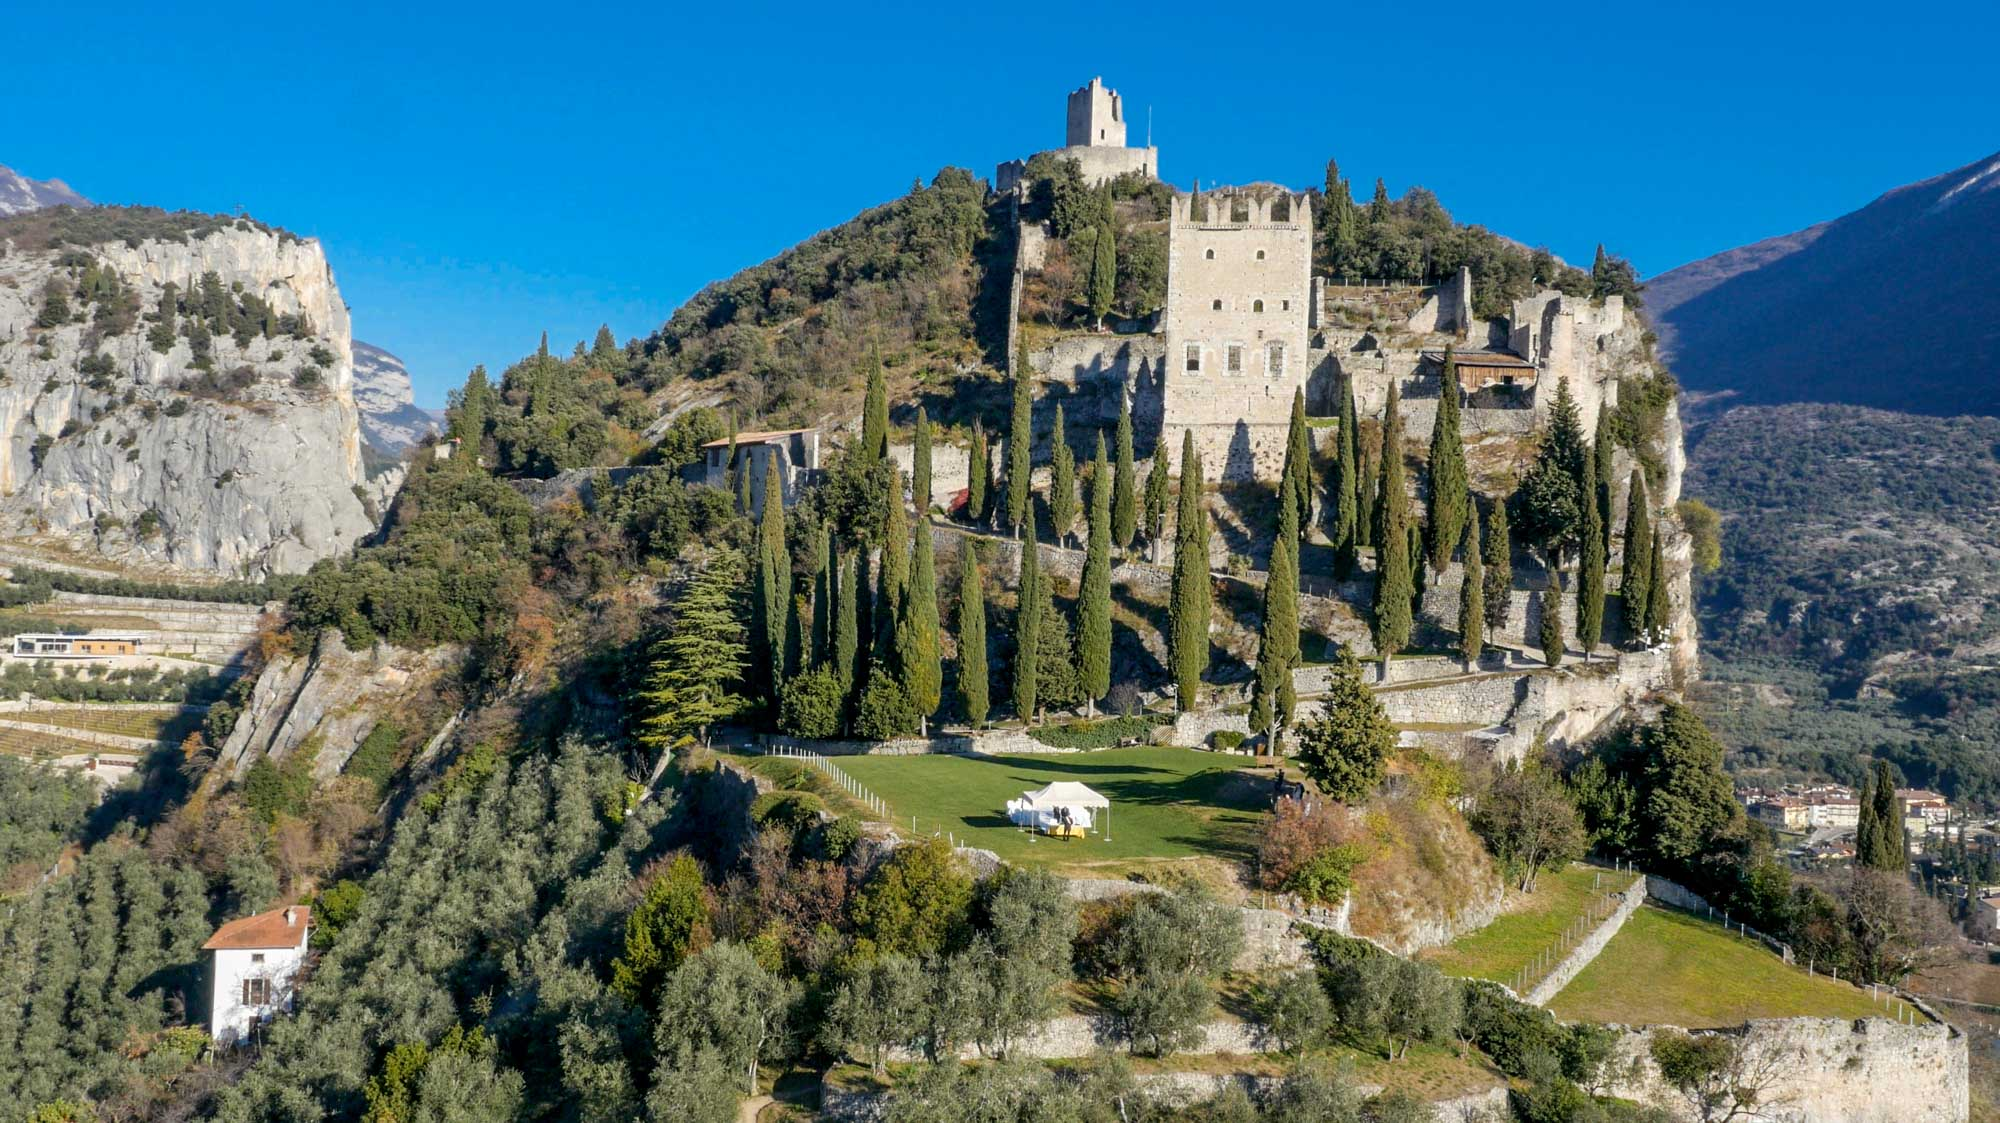 Your Wedding or Love recurrence at Arco Castle - Lake Garda, Trentino